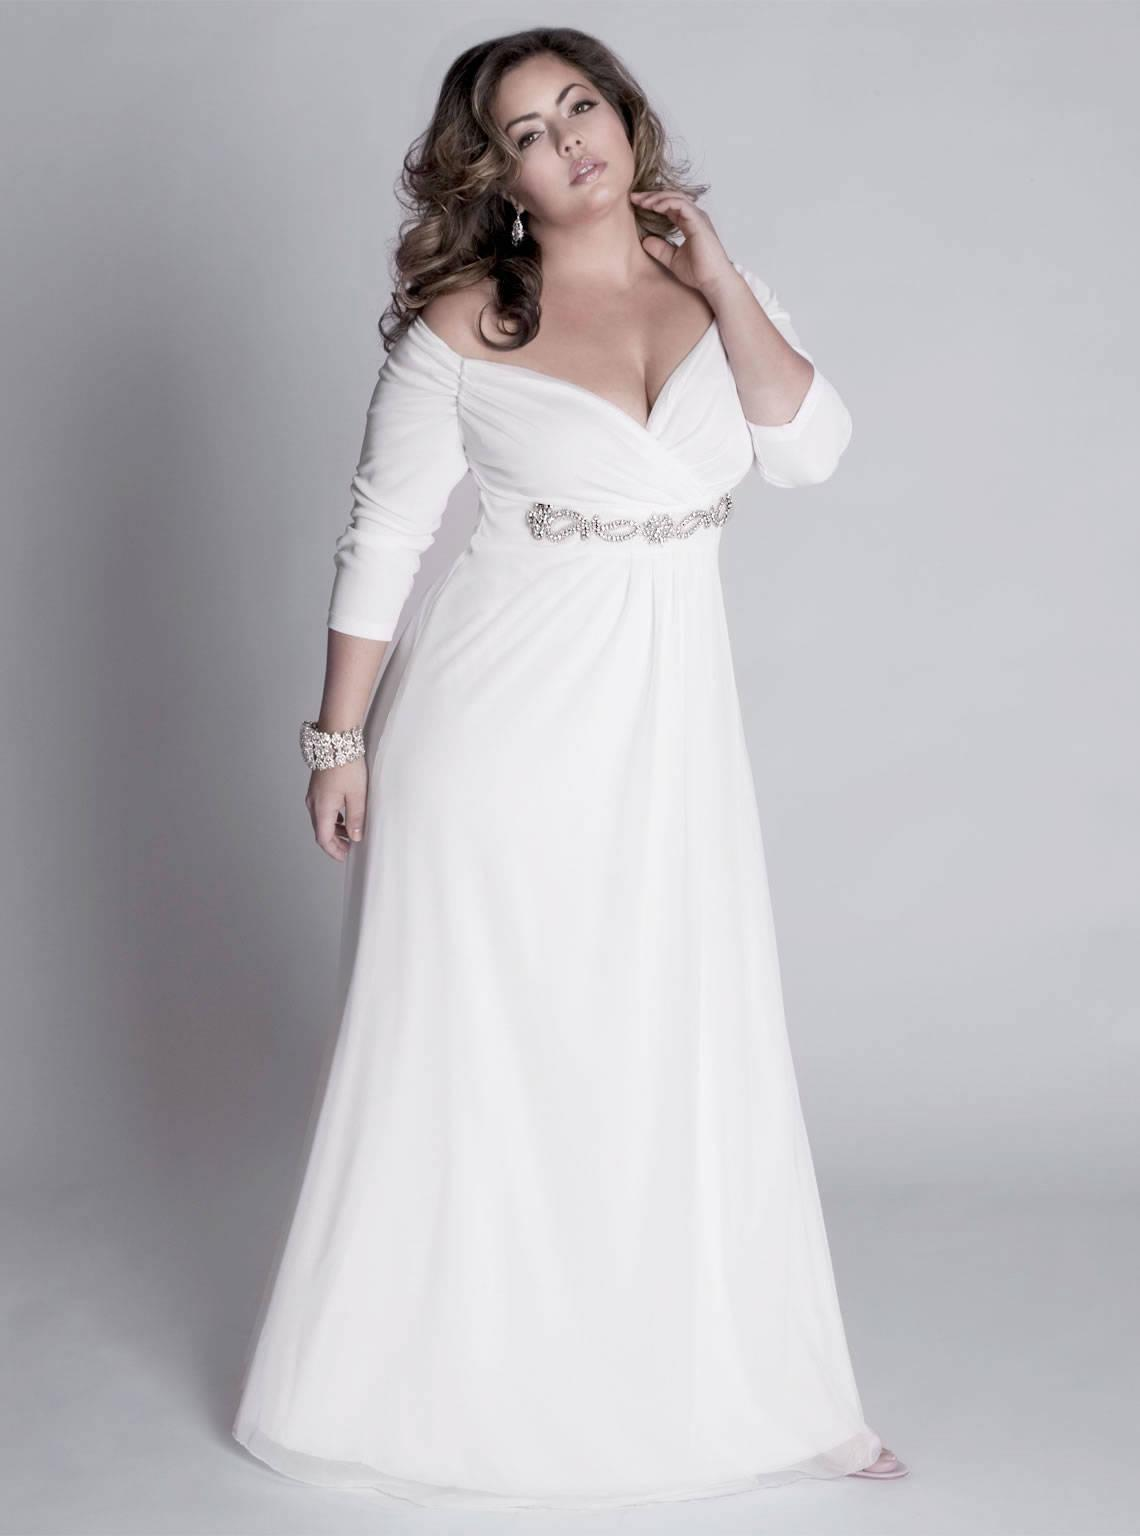 34 Sleeve Plus Size Evening Gowns From Darius Custom Dresses